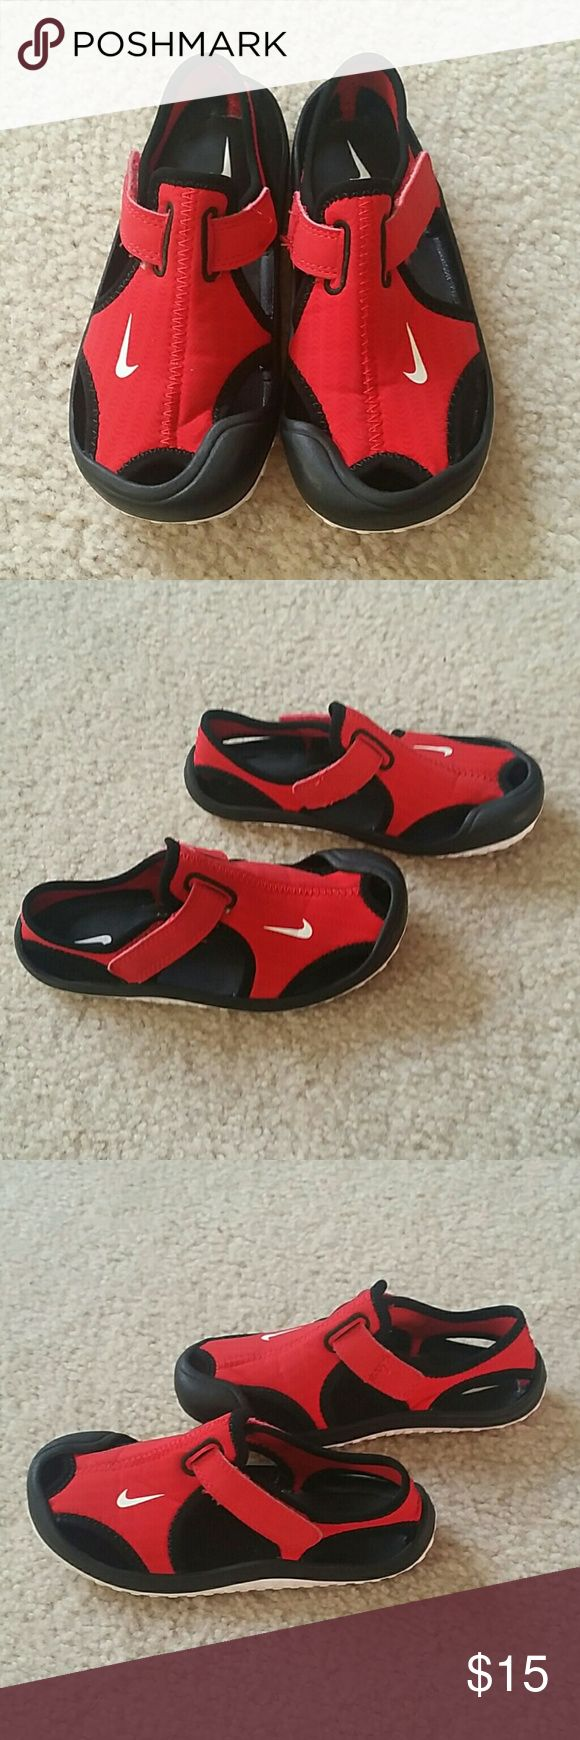 Toddler Boys Girls NIKE Water Shoes 10c Shoes are in excellent pre owned condition! Perfect for any Summer outing to the water park, pool, camp, beach, etc. Nike Shoes Water Shoes